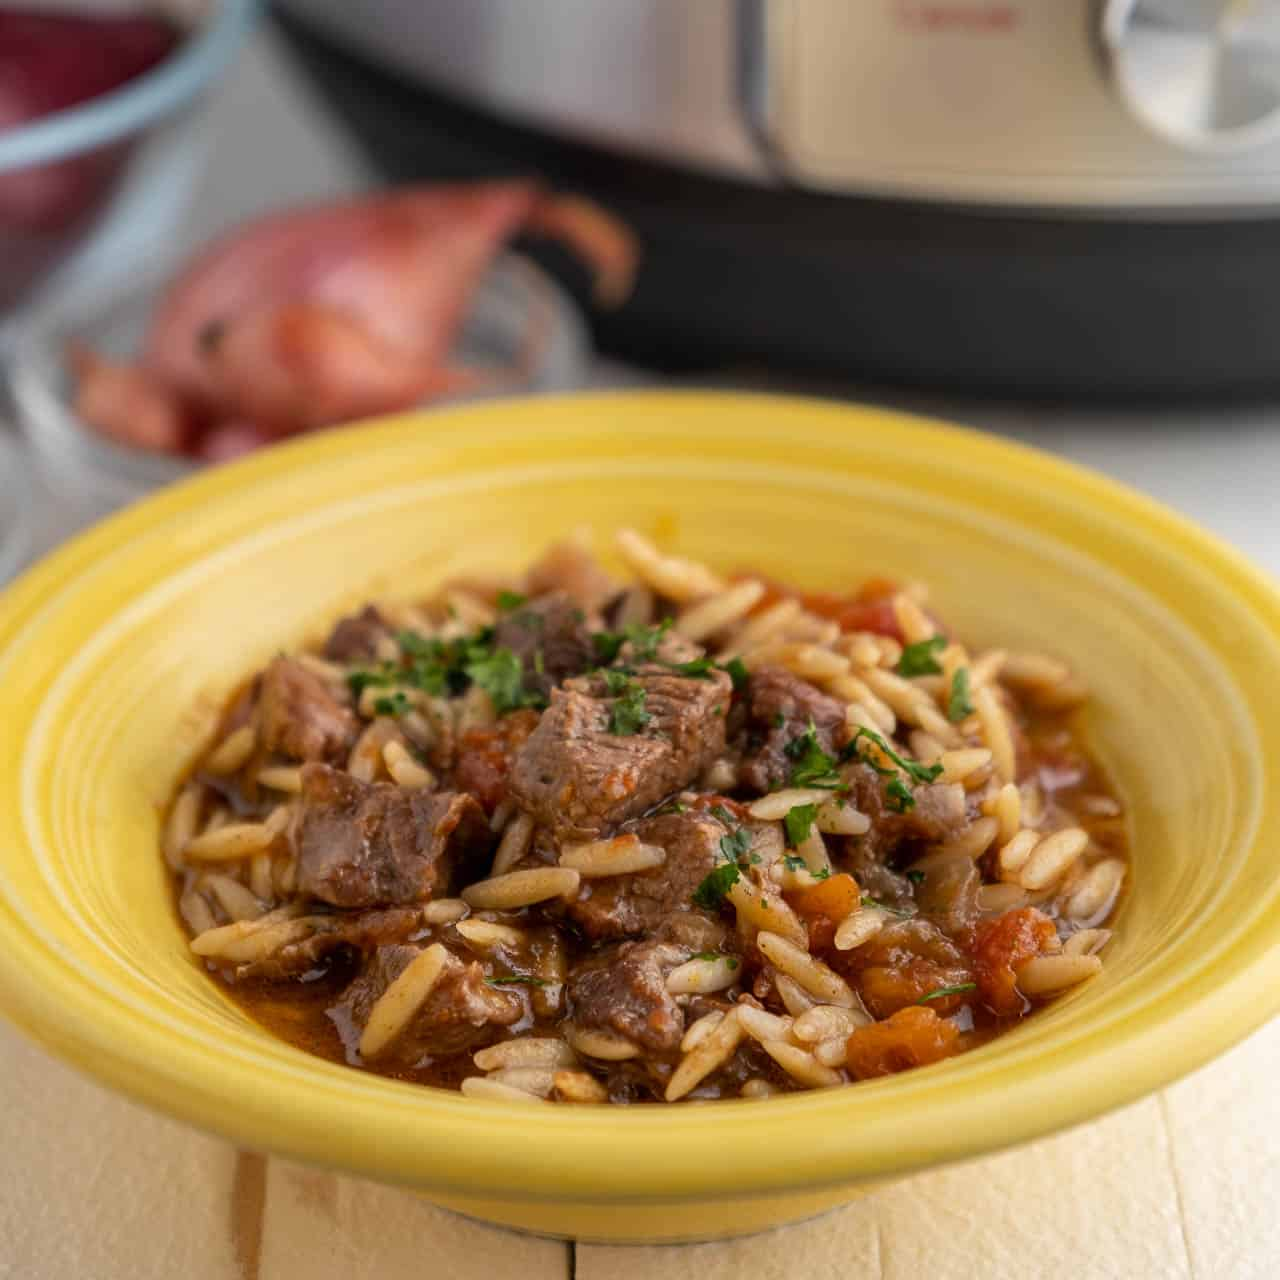 A yellow bowl of youvetsi - greek lamb stew with orzo